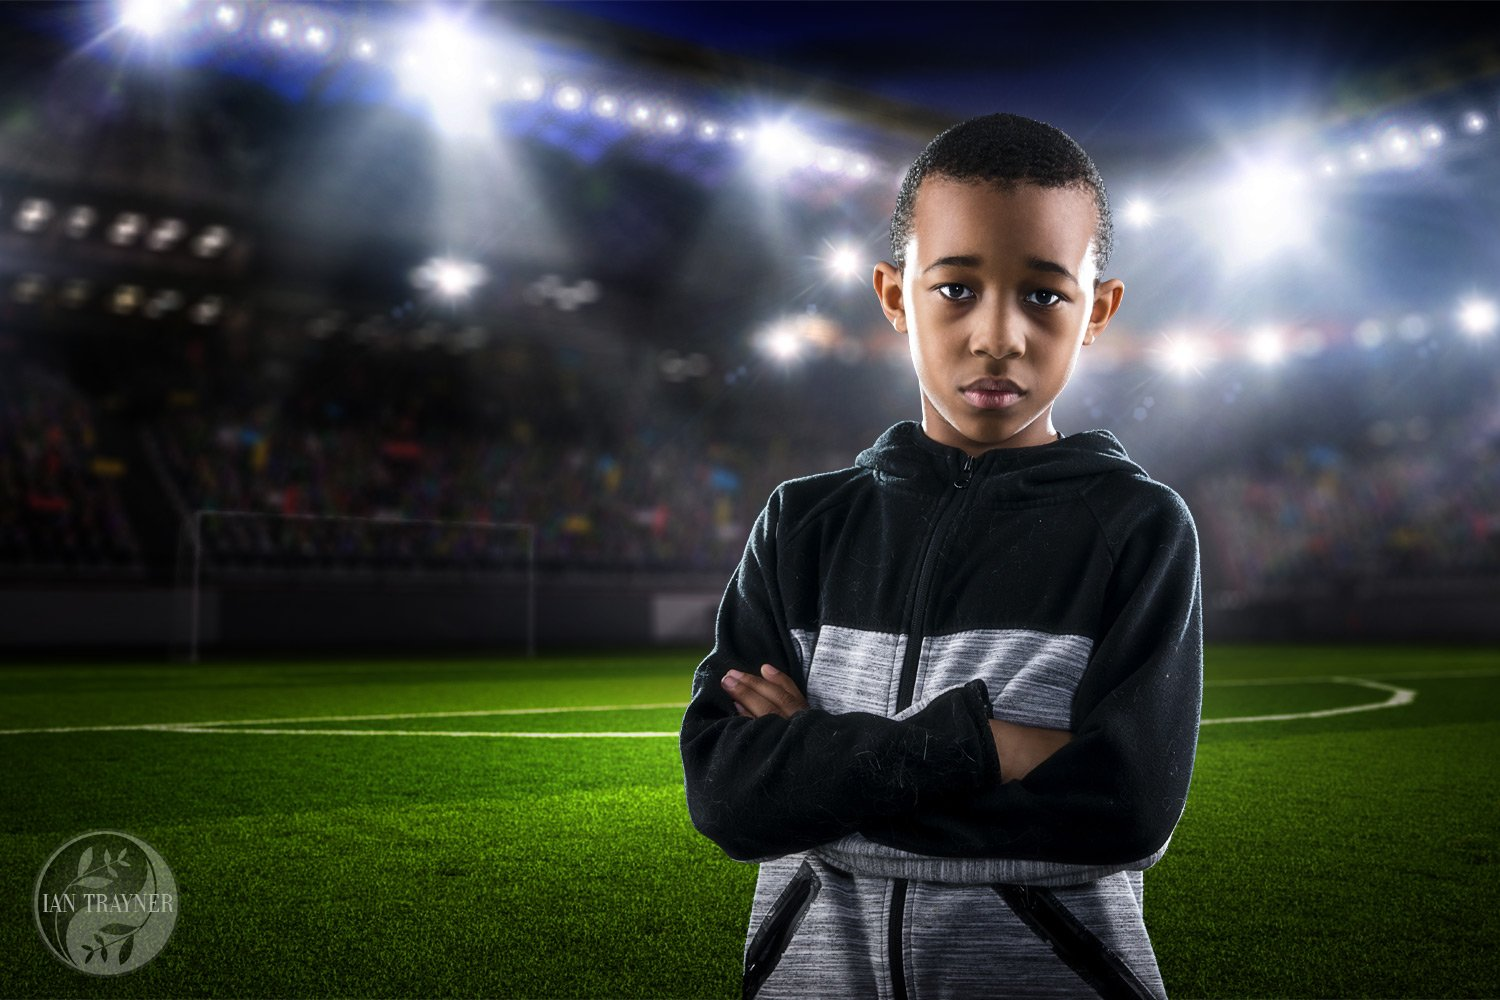 """Boy in football stadium"", composite photographic artwork by Ian Trayner"